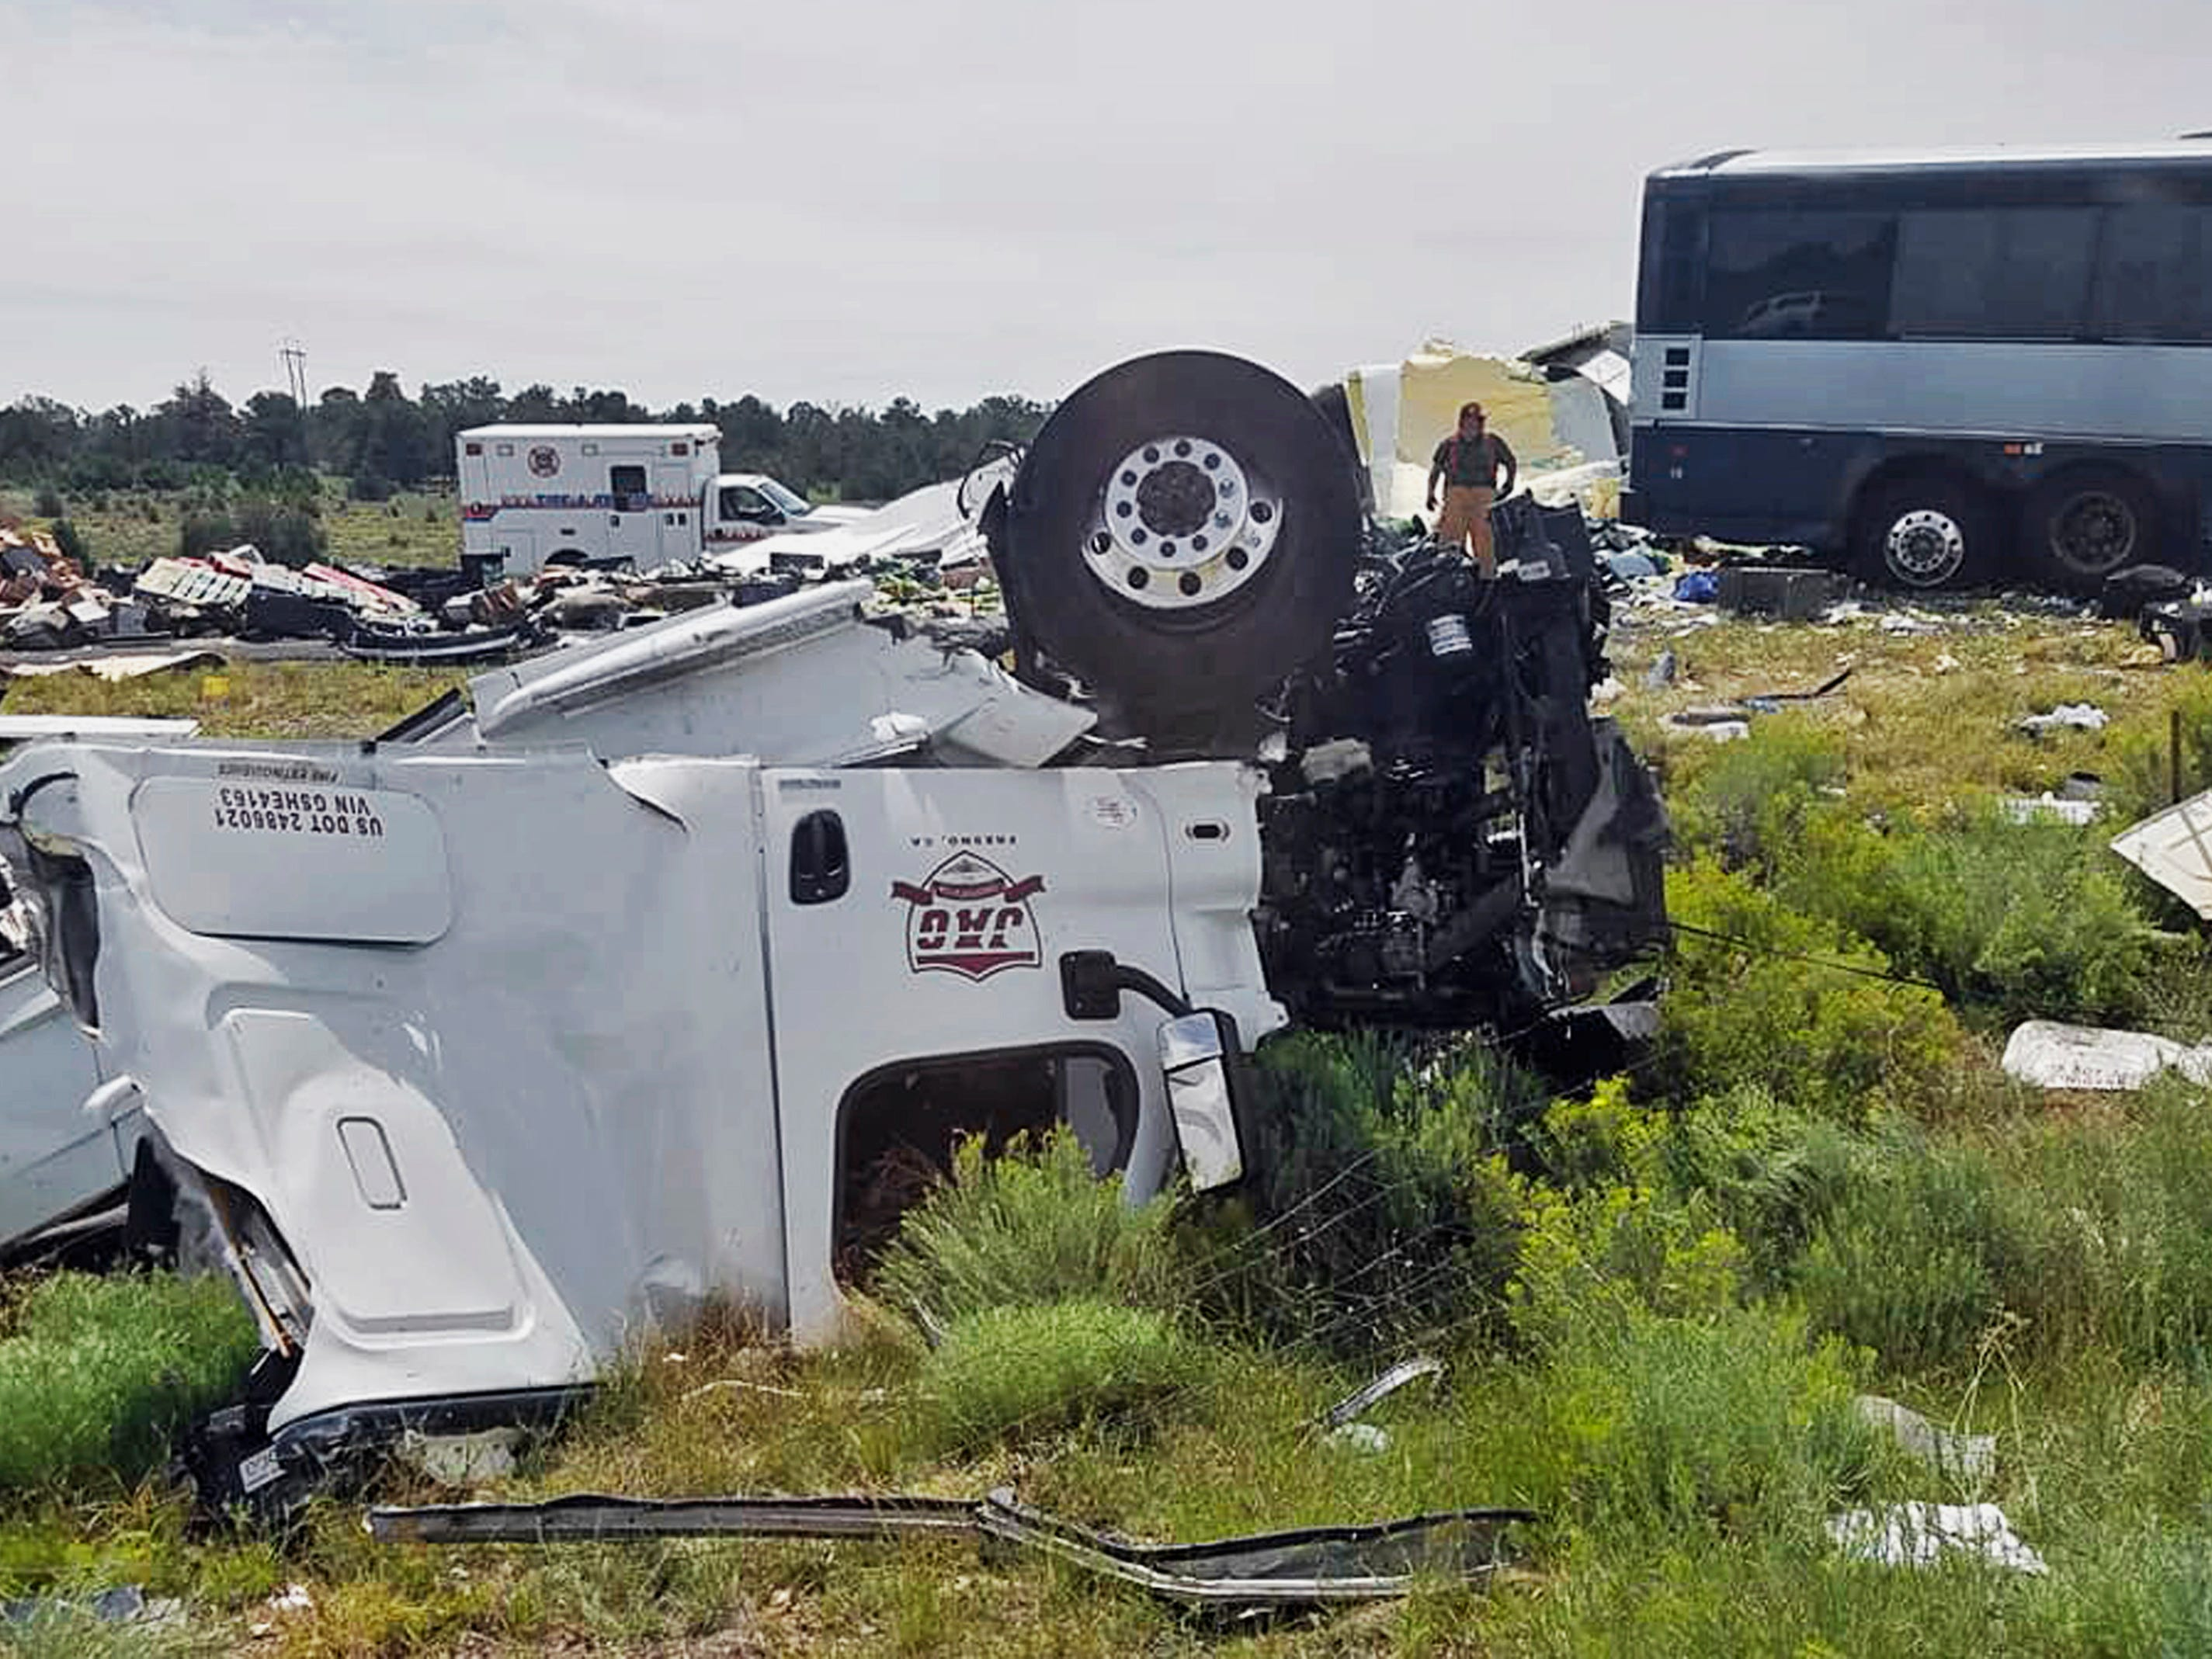 First responders work the scene of a collision between a Greyhound passenger bus and a semi-truck on Interstate 40 near the town of Thoreau, N.M., near the Arizona border on Aug. 30, 2018. Multiple people were killed and others were seriously injured. Officers and rescue workers were on scene but did not provide details about how many people were killed or injured, or what caused the crash.